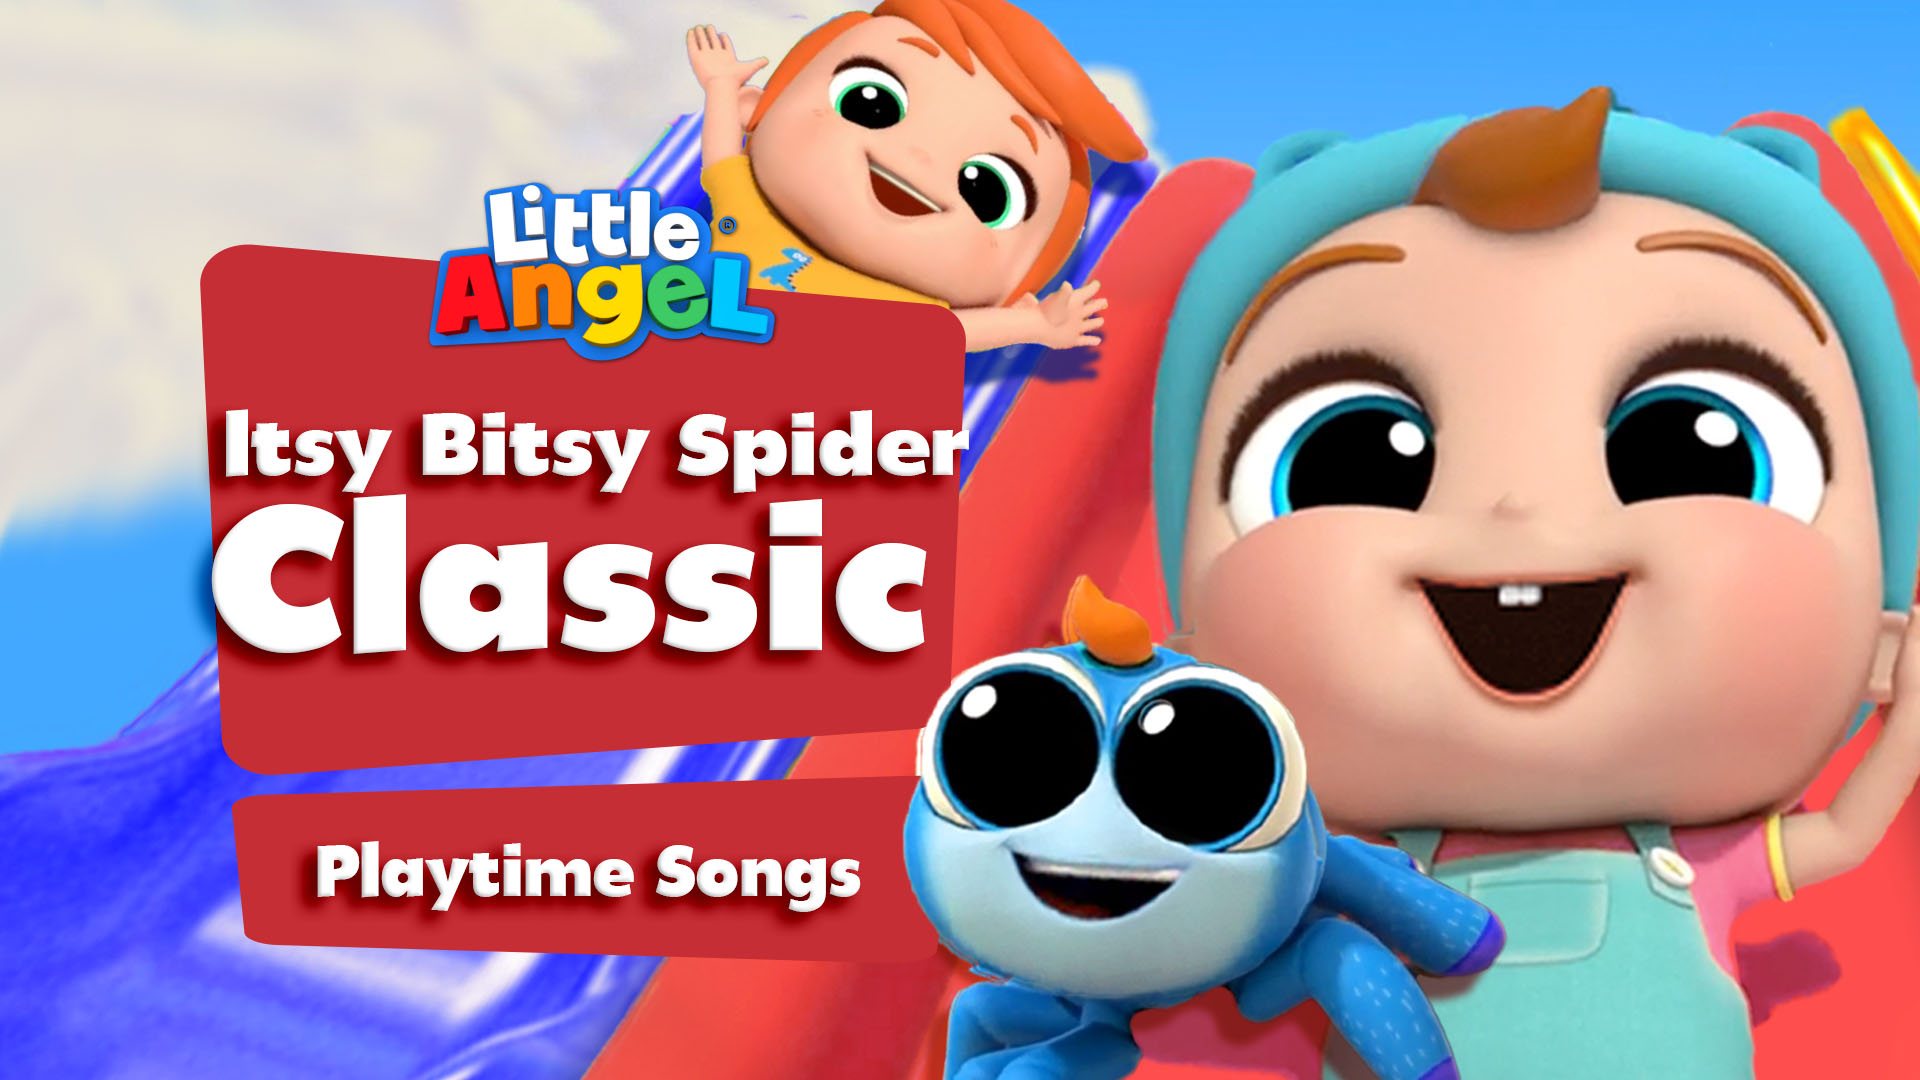 Itsy Bitsy Spider Classic Playtime Songs - Little Angel